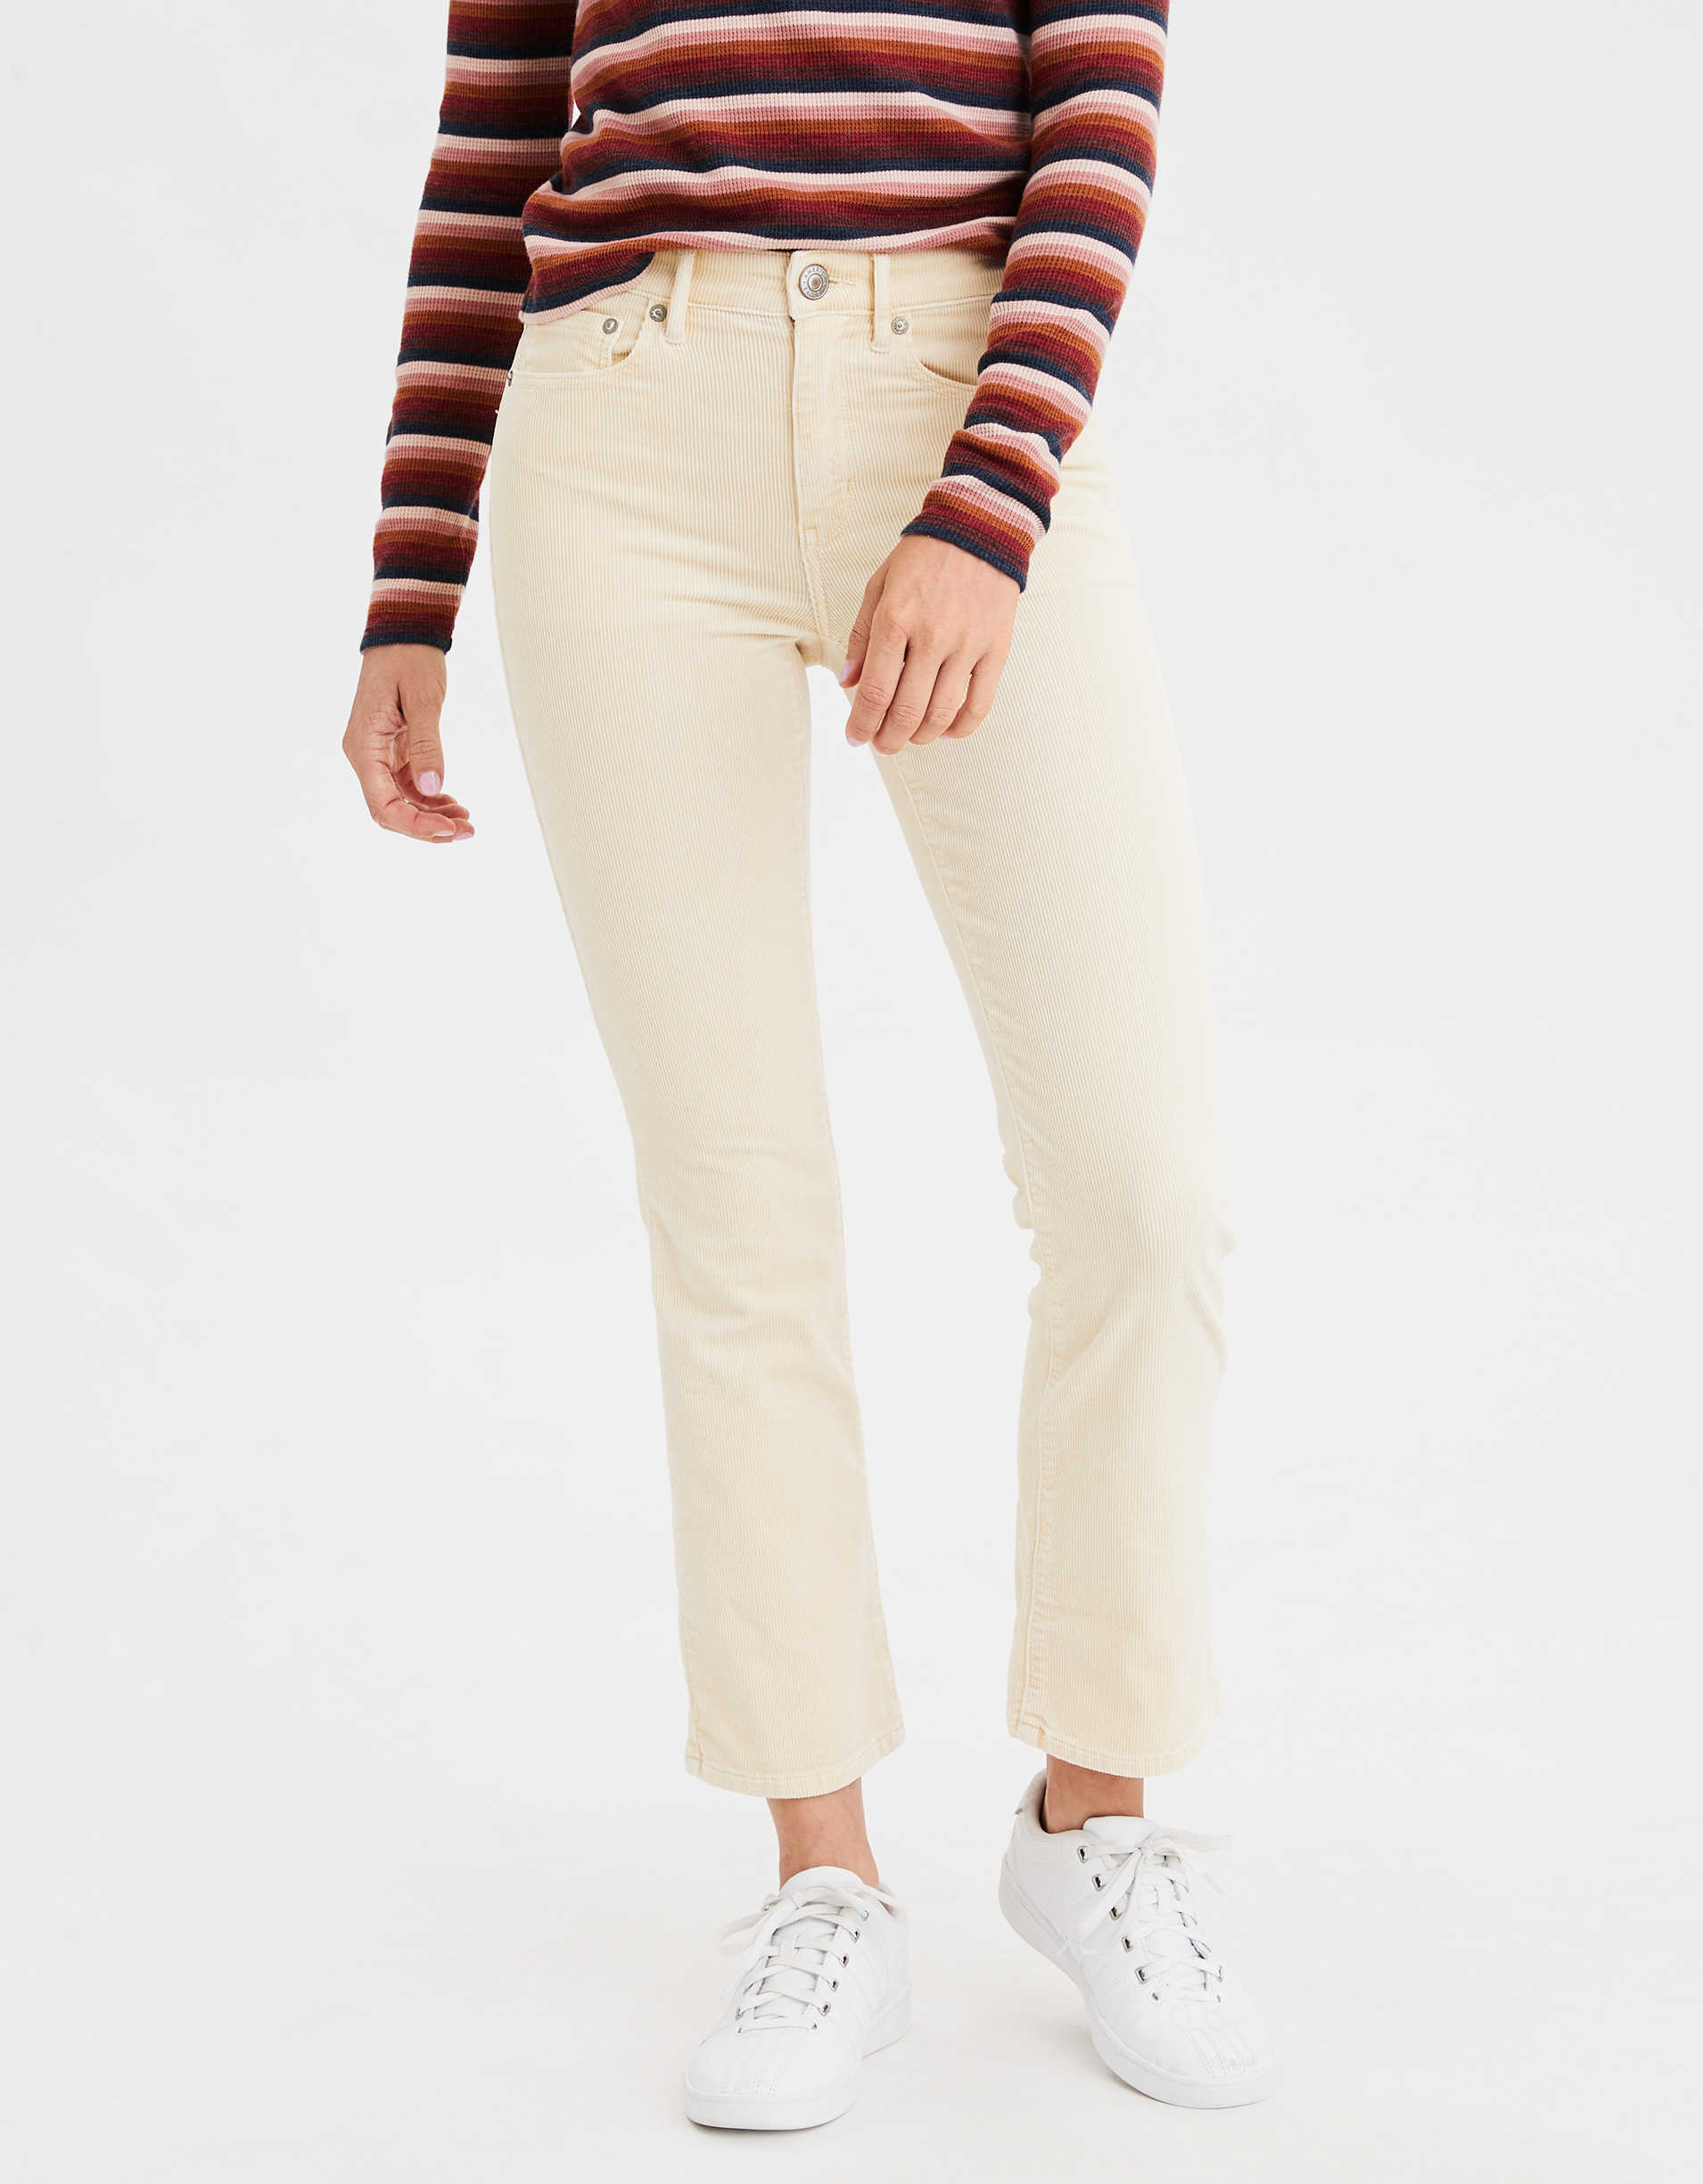 AE High-Waisted Corduroy Crop Flare Pant